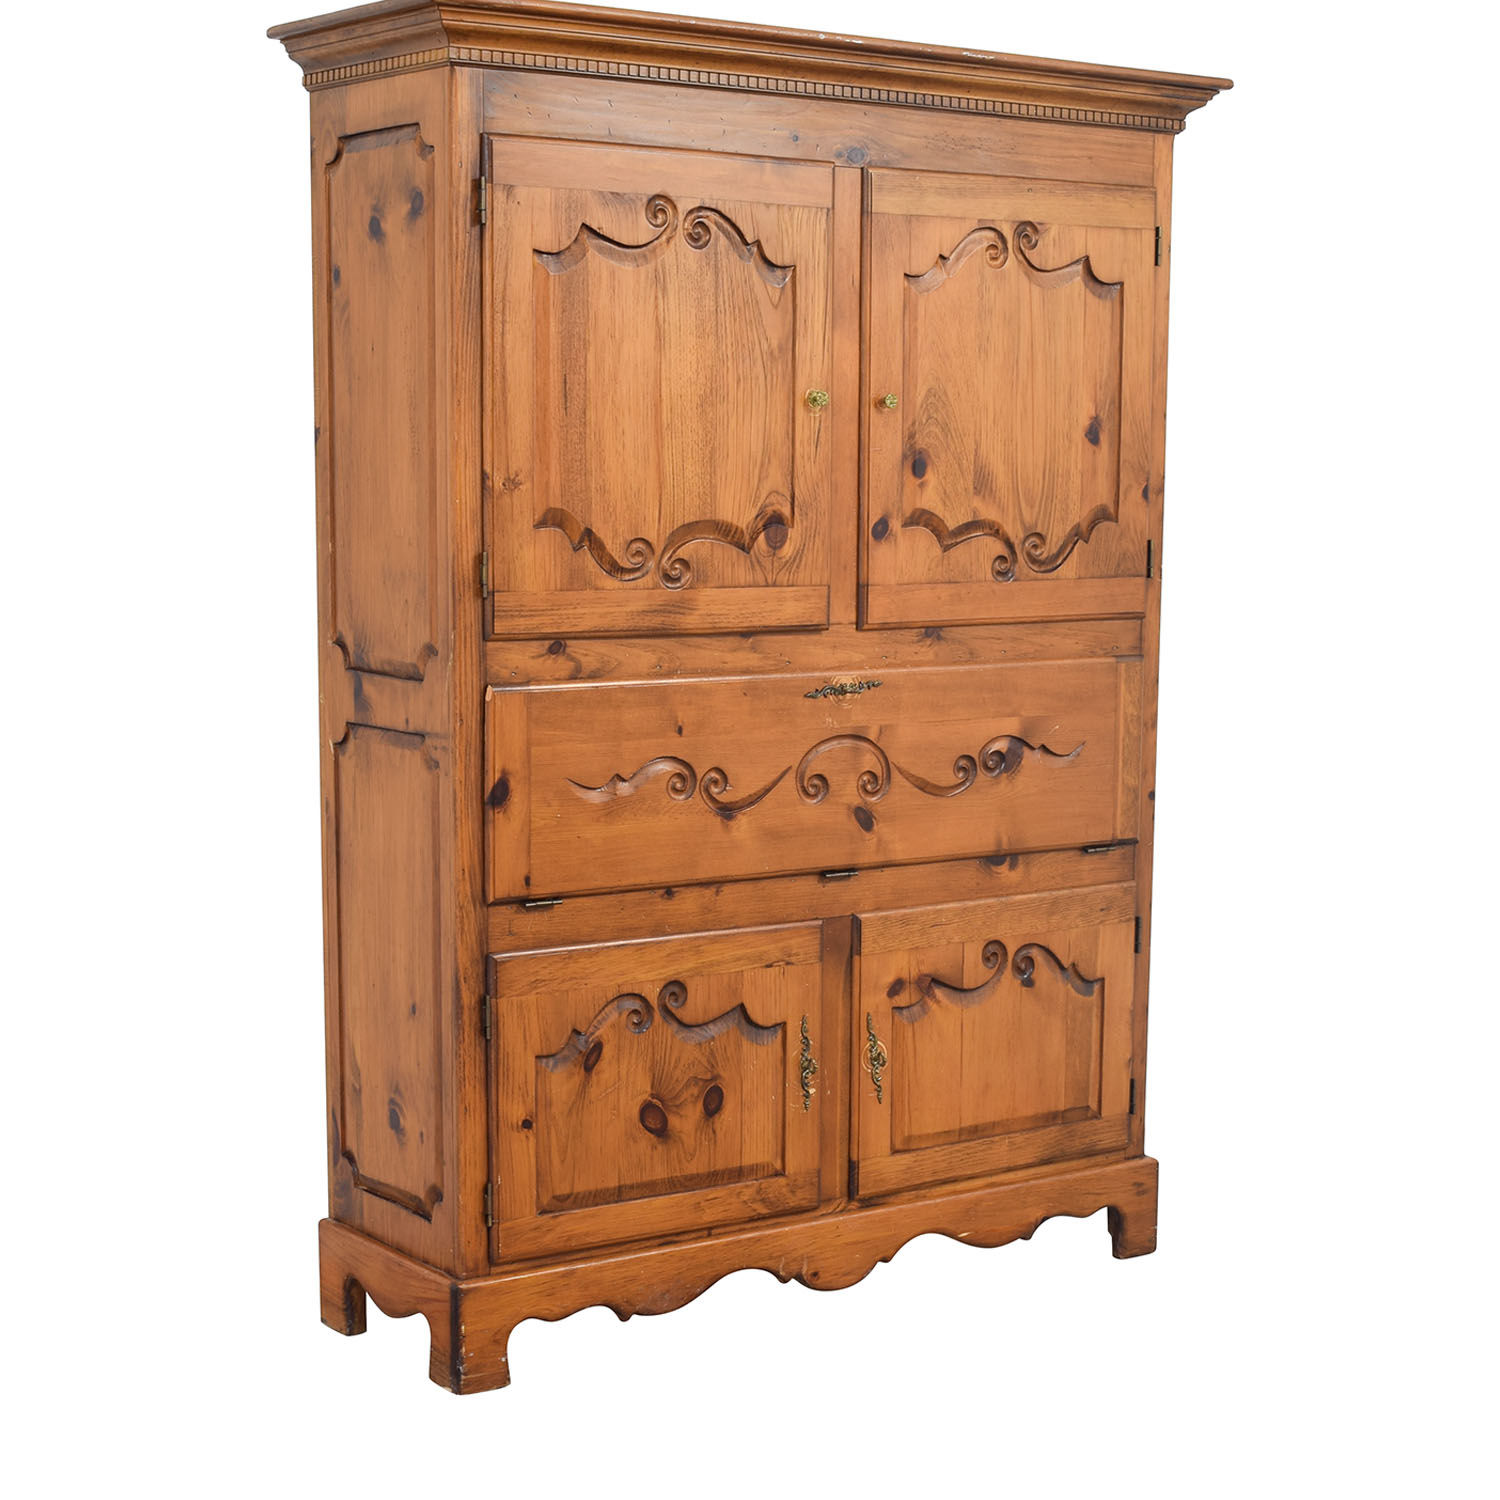 down very interior retro stock antique complete our we period lovely see picture with wardrobes cheshire buy vintage crafts arts next sell walnut and teaserbox furniture fitted double attractive wardrobe burr